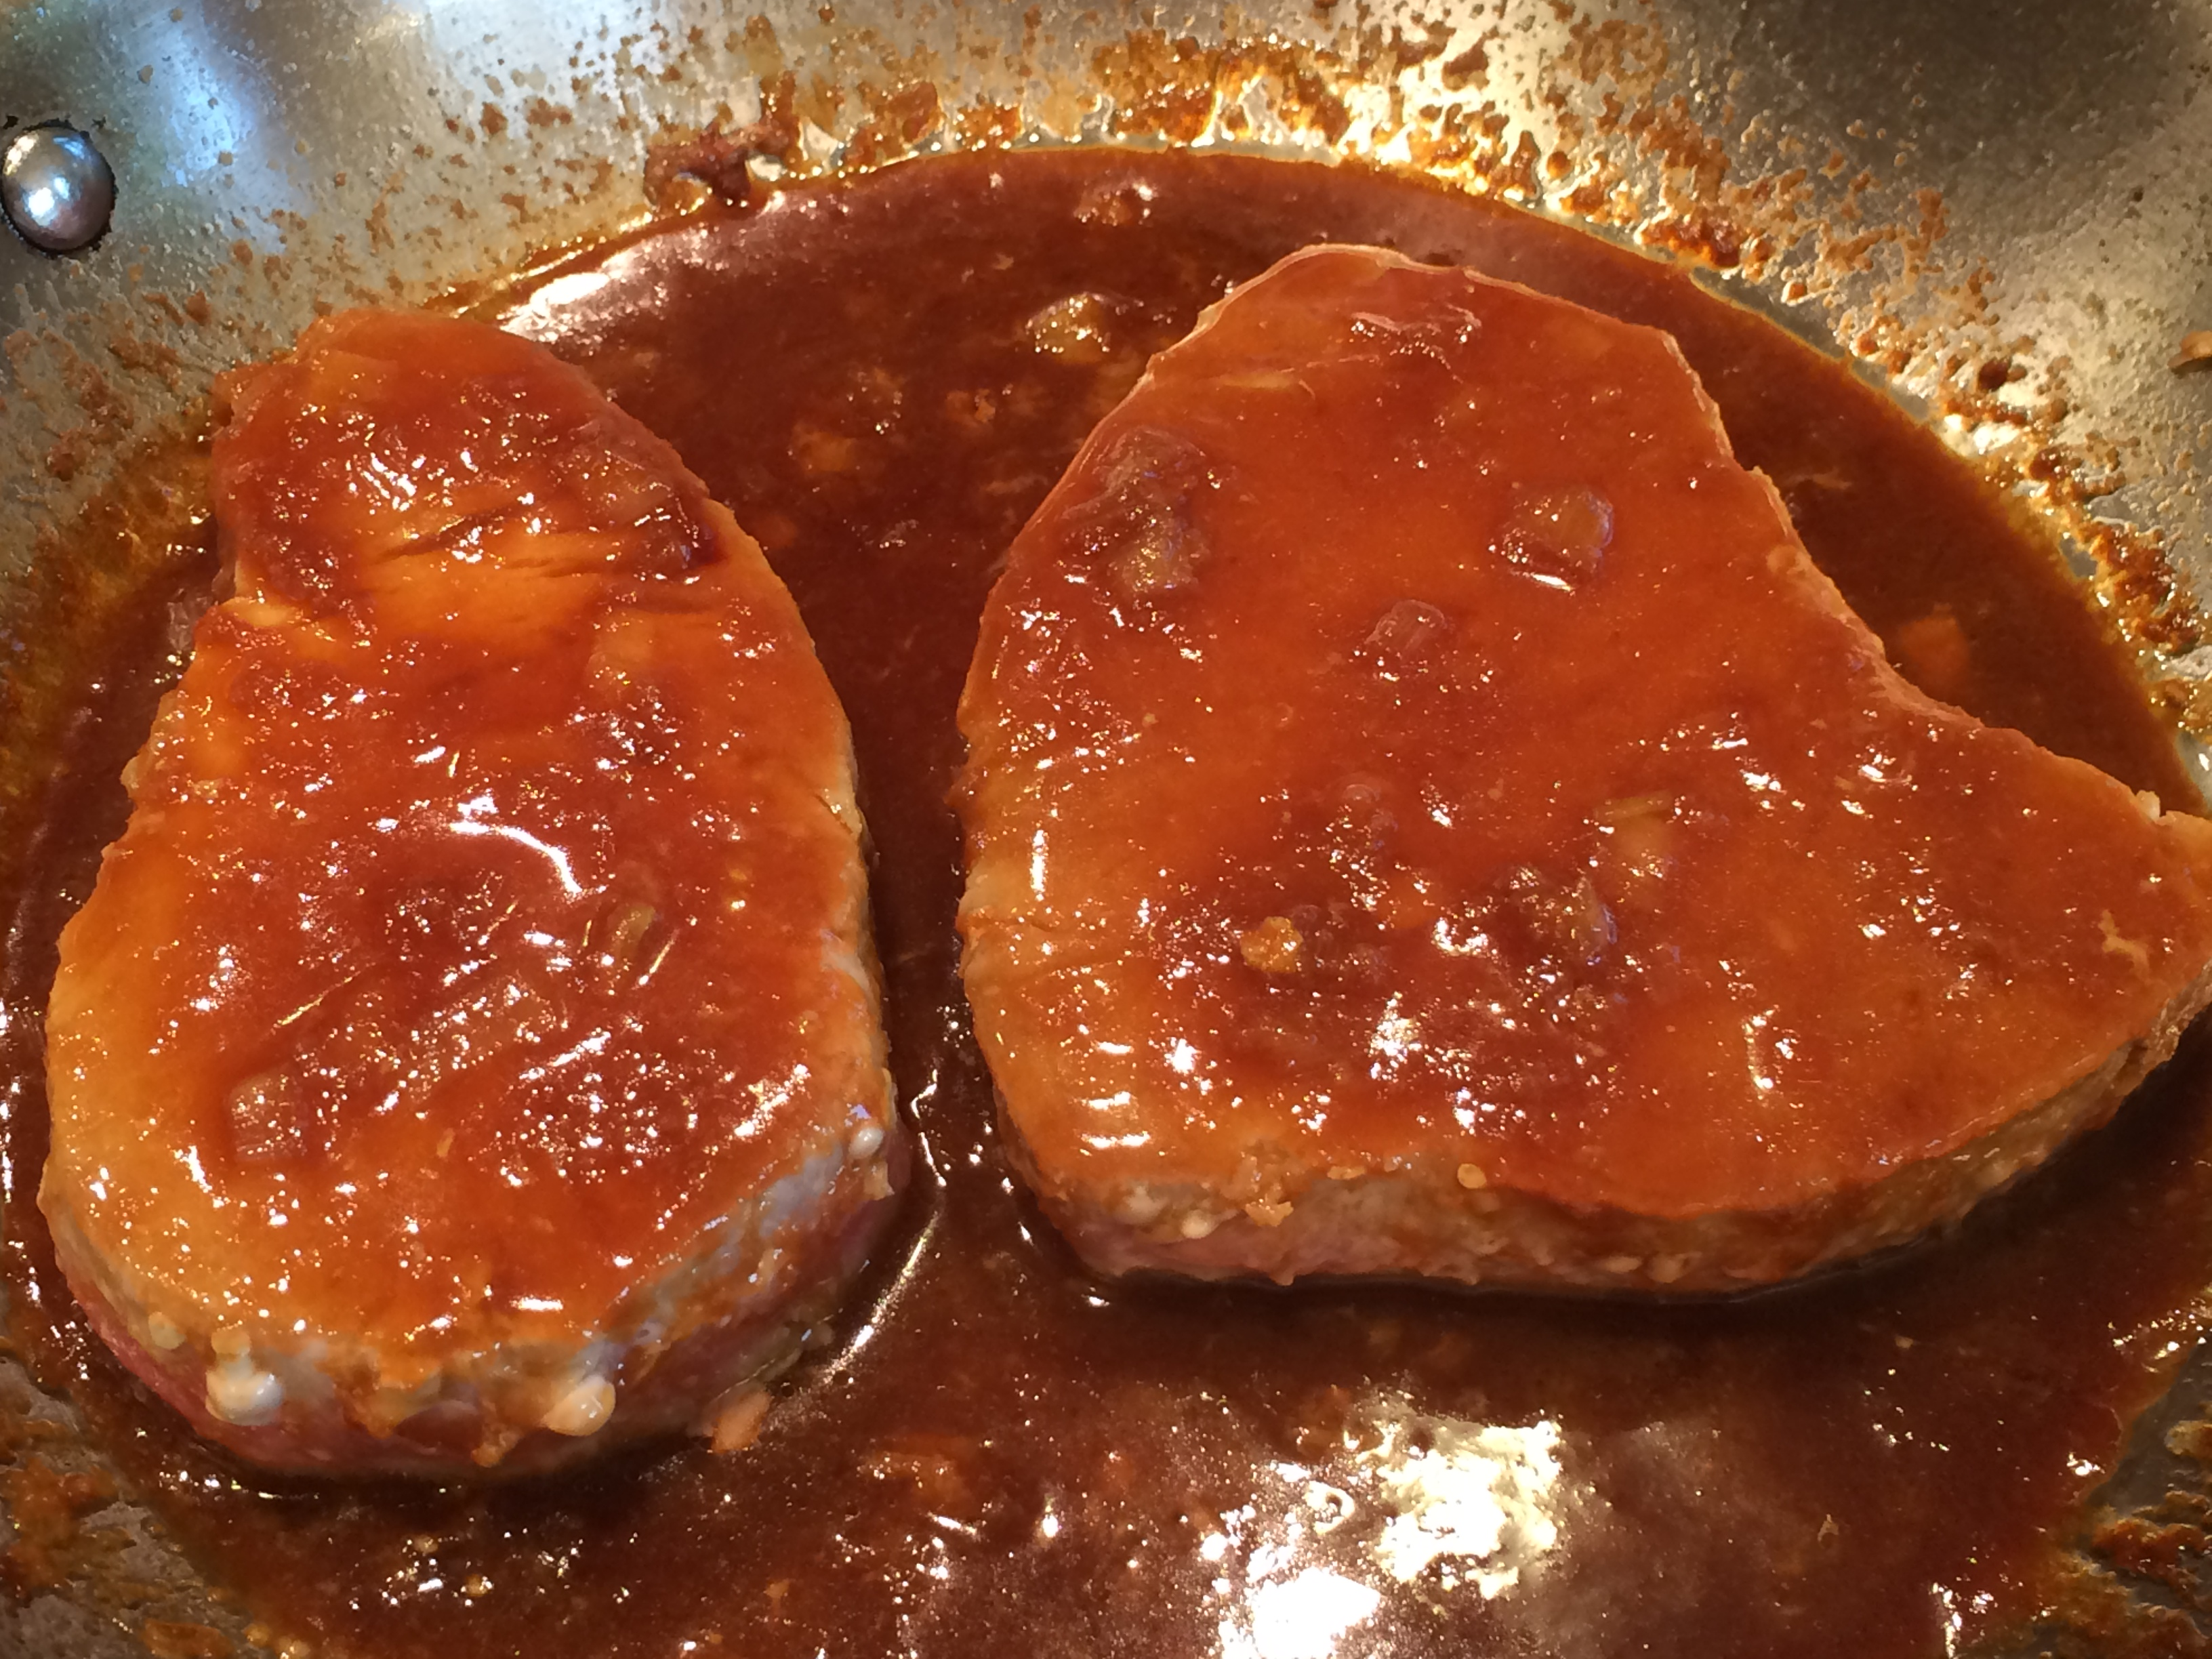 ... the sauce. Put tuna steaks back into the pan and cover with sauce